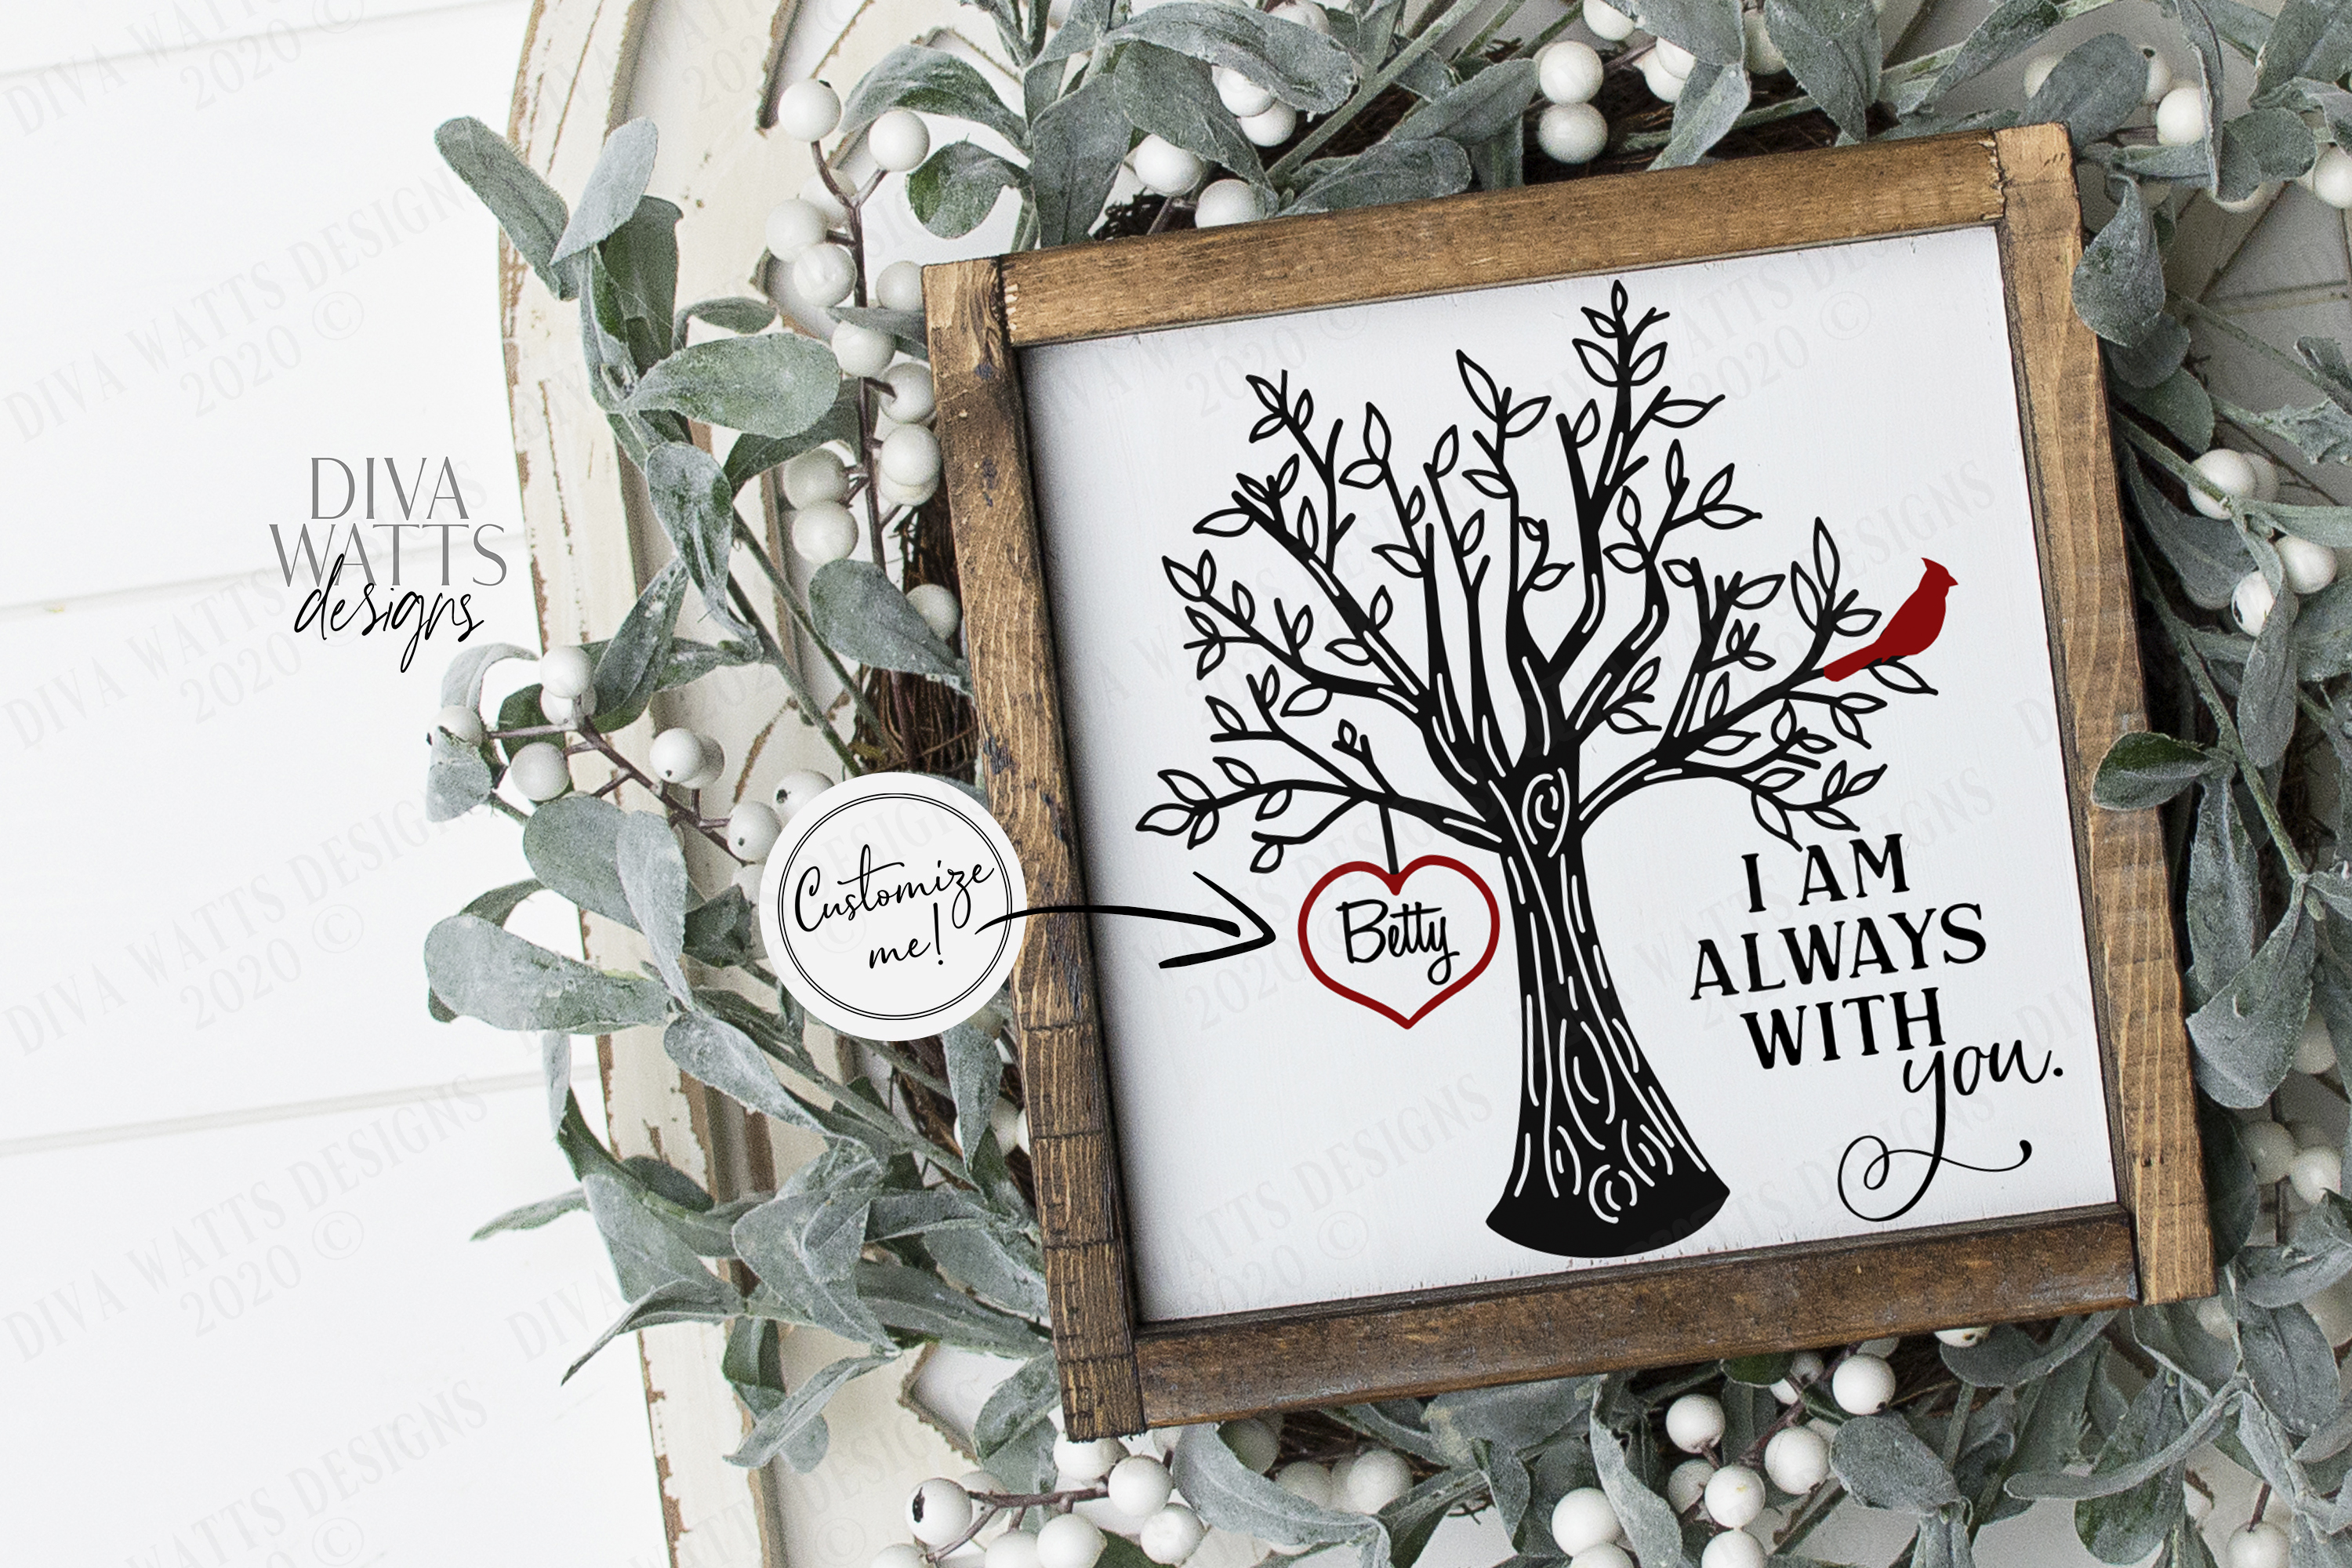 I Am Always With You - Red Cardinal Tree Heart - Customize example image 2